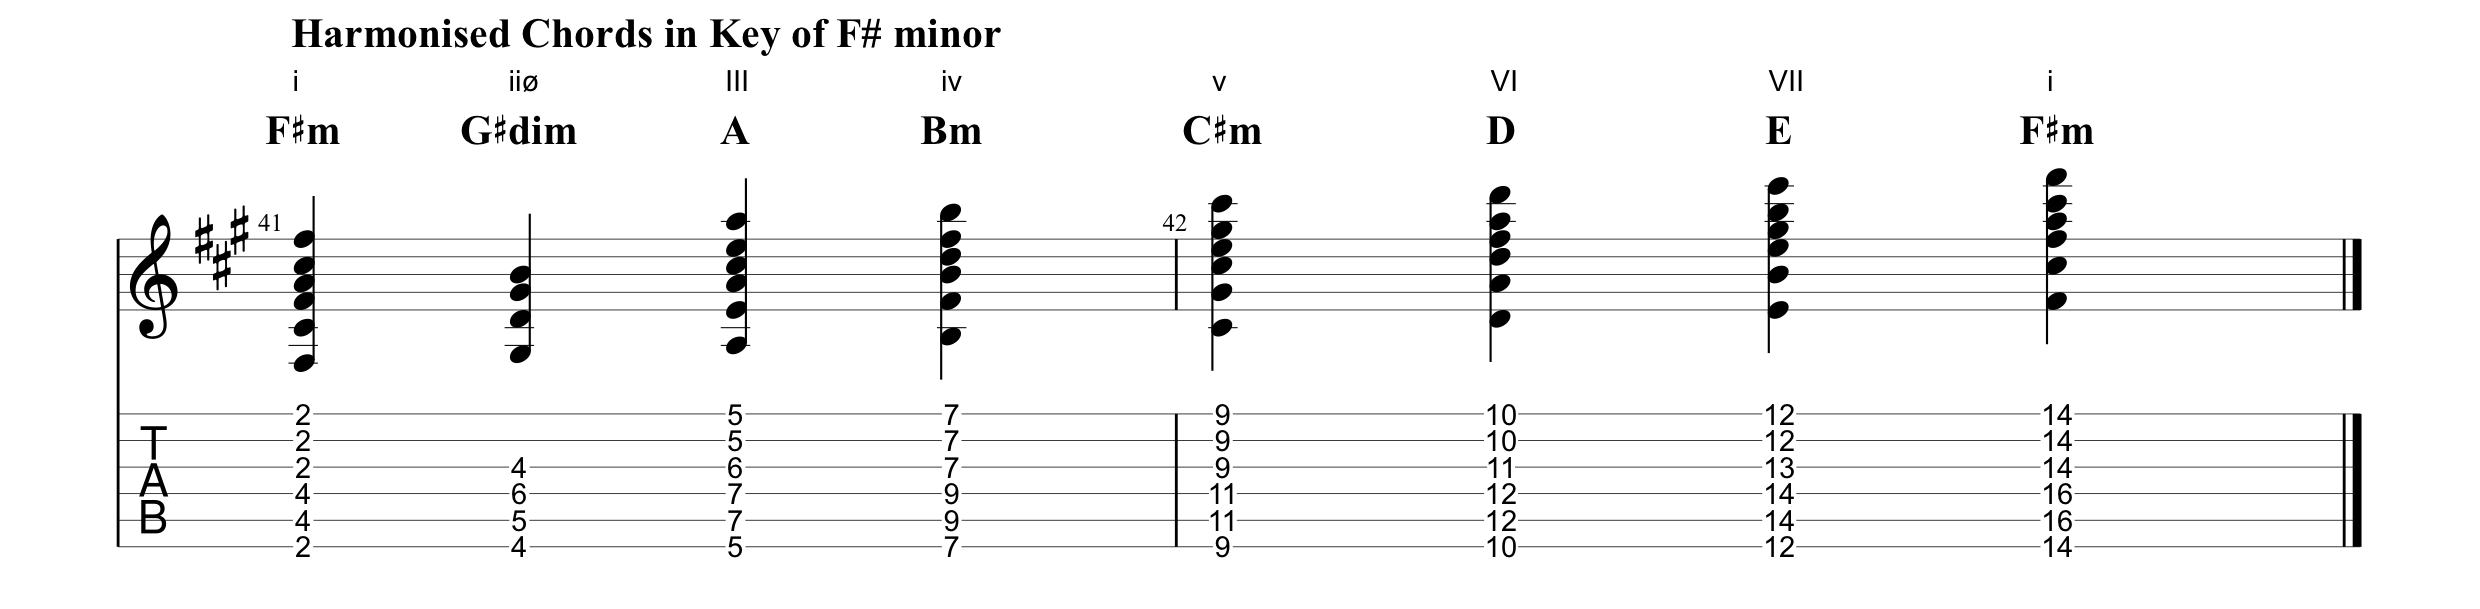 Harmonised Chords in the Key of F# minor (My Silver Lining).png